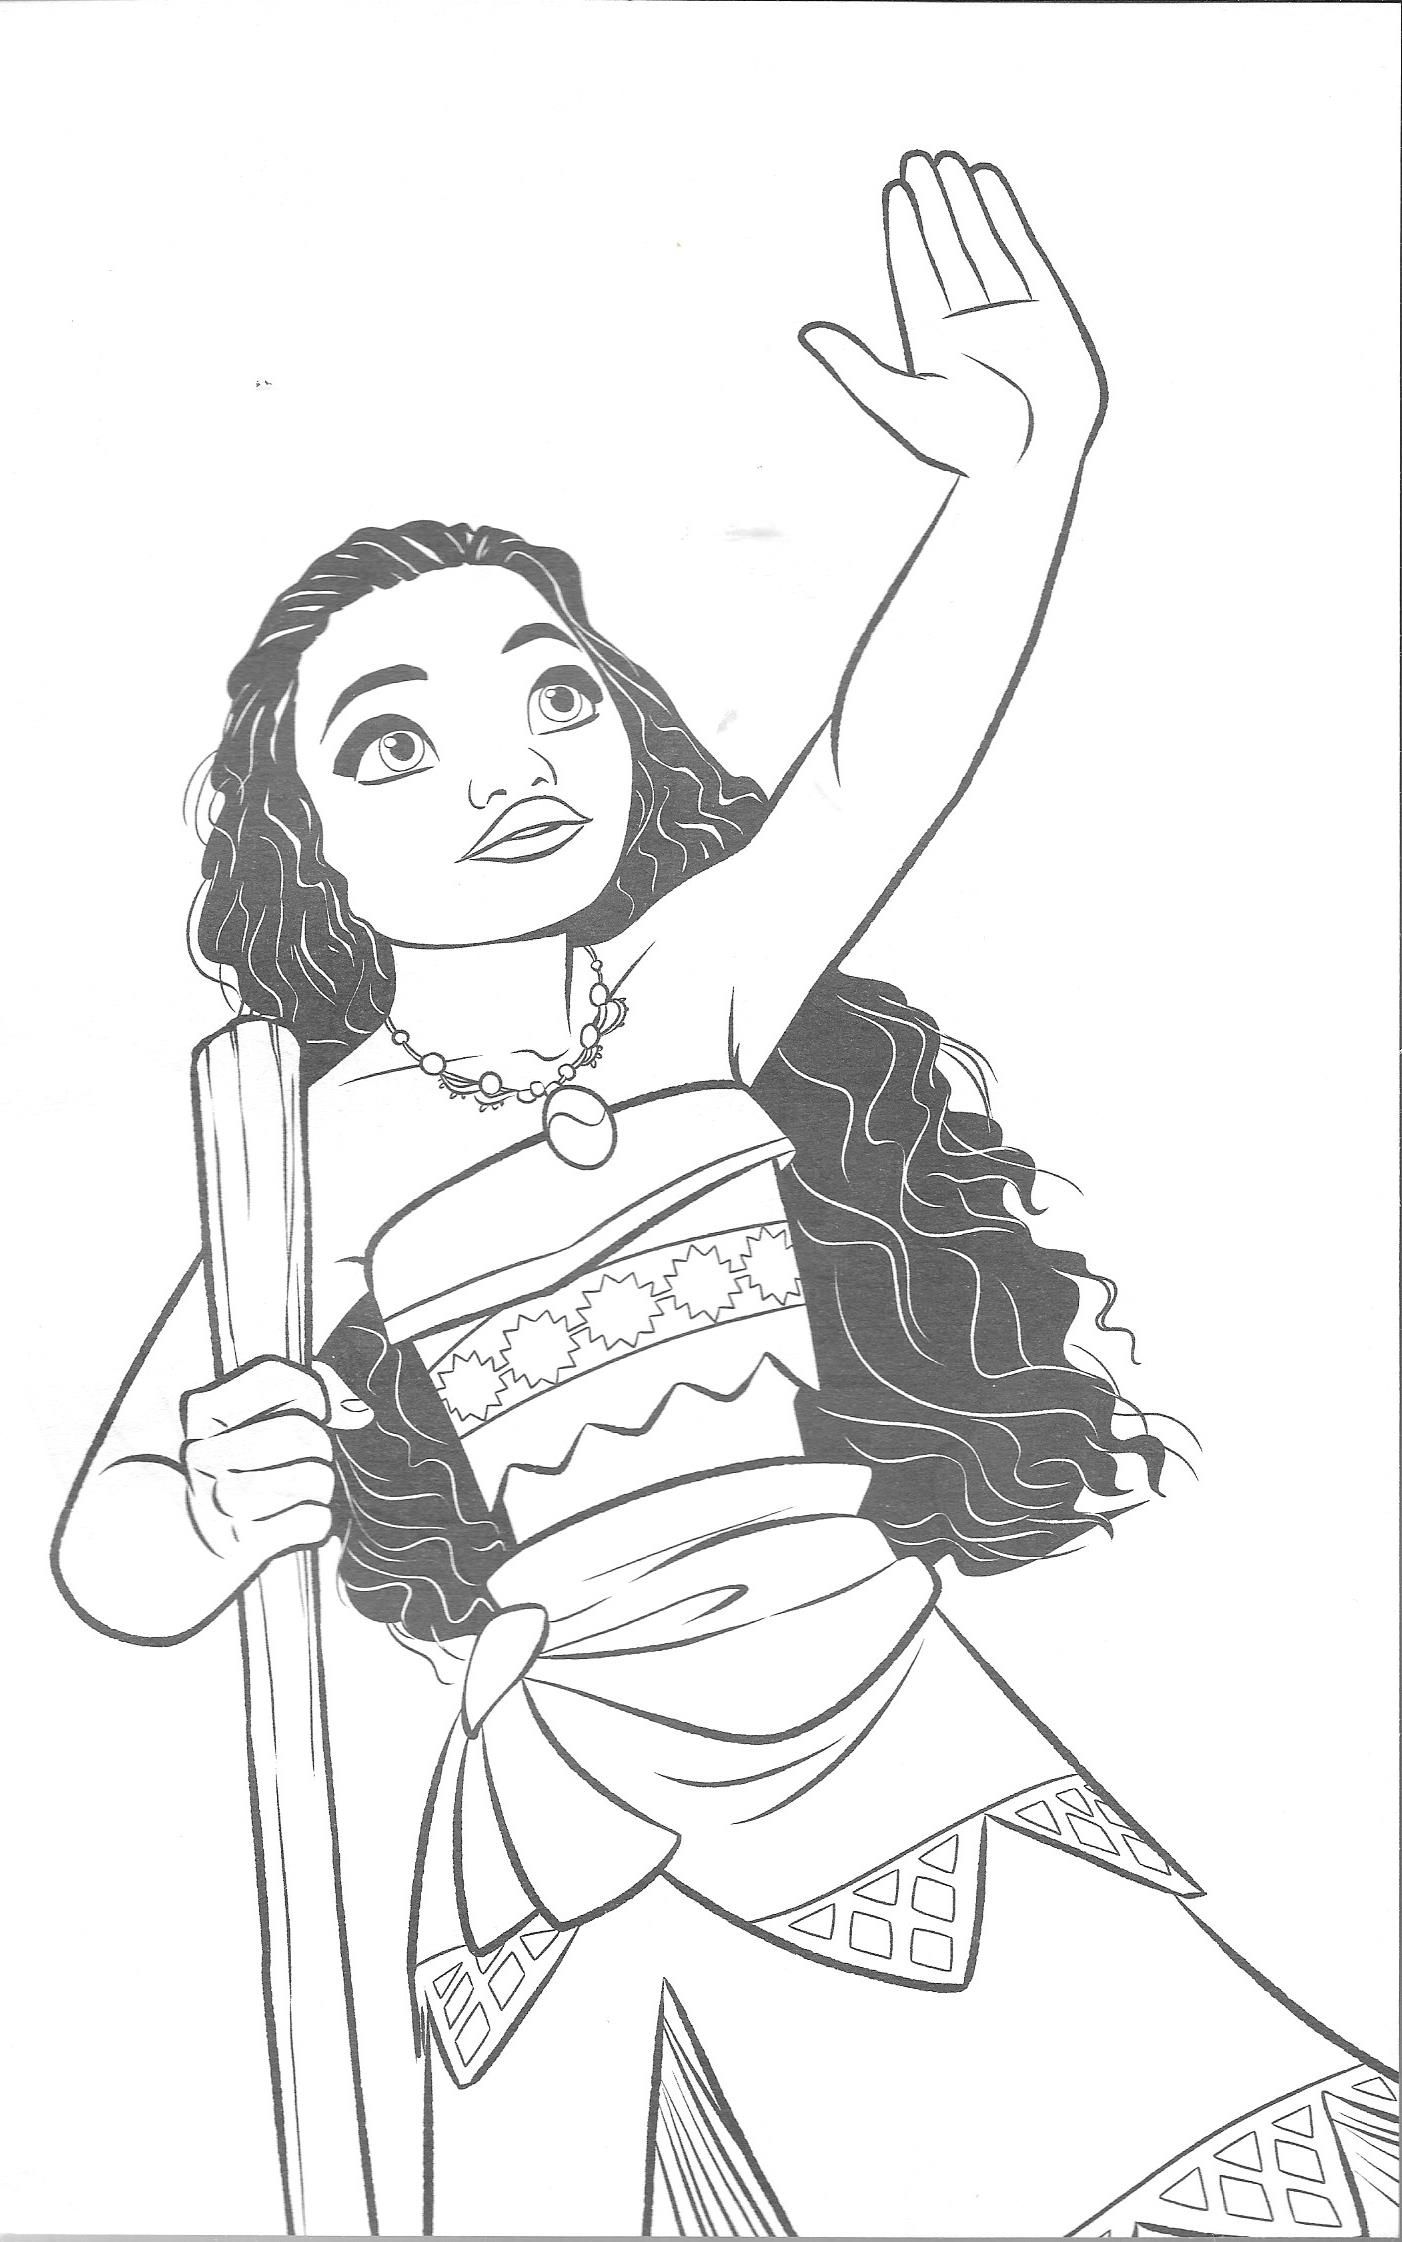 Pin By Sasi Kongtana On Coloring Pages Cute Coloring Pages Coloring Pages Coloring Pages For Kids